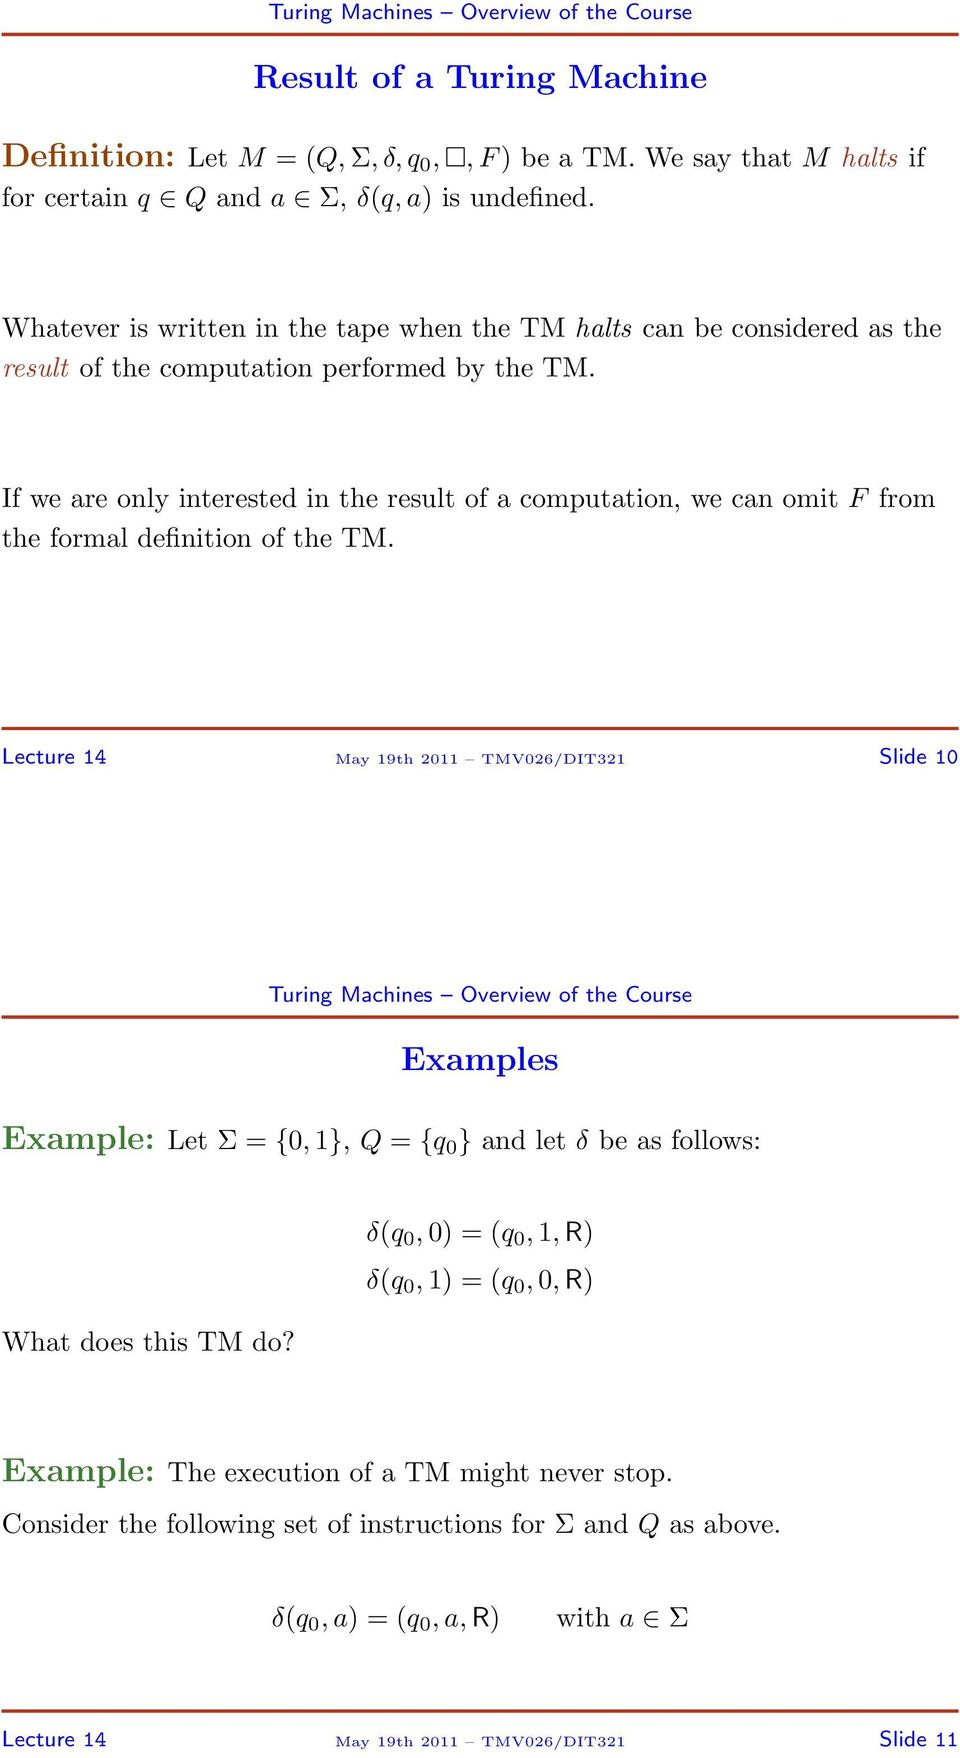 If we are only interested in the result of a computation, we can omit F from the formal definition of the TM.